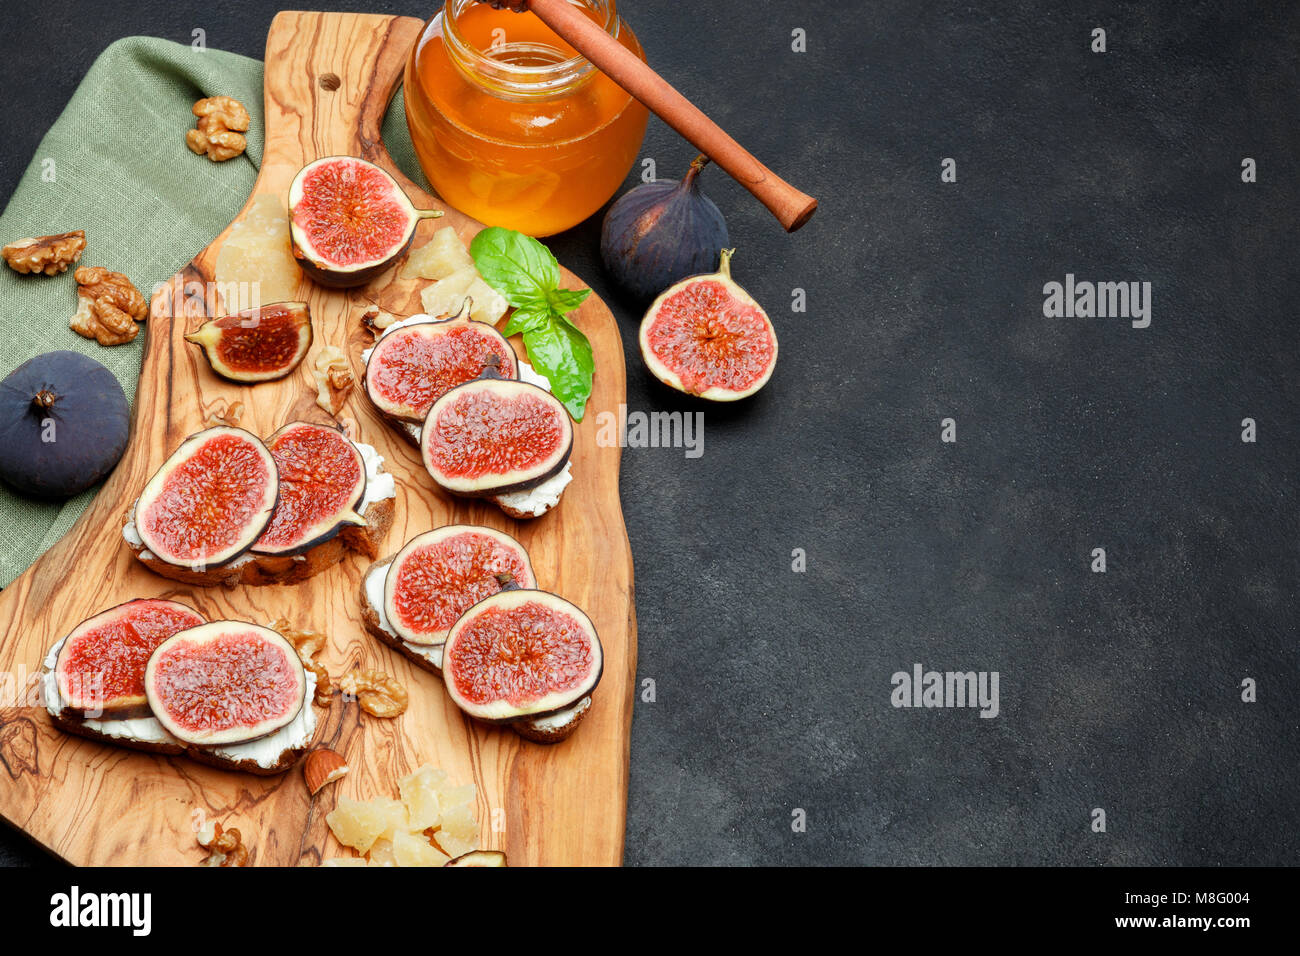 Bruschetta with blue cheese and fresh figs - Stock Image